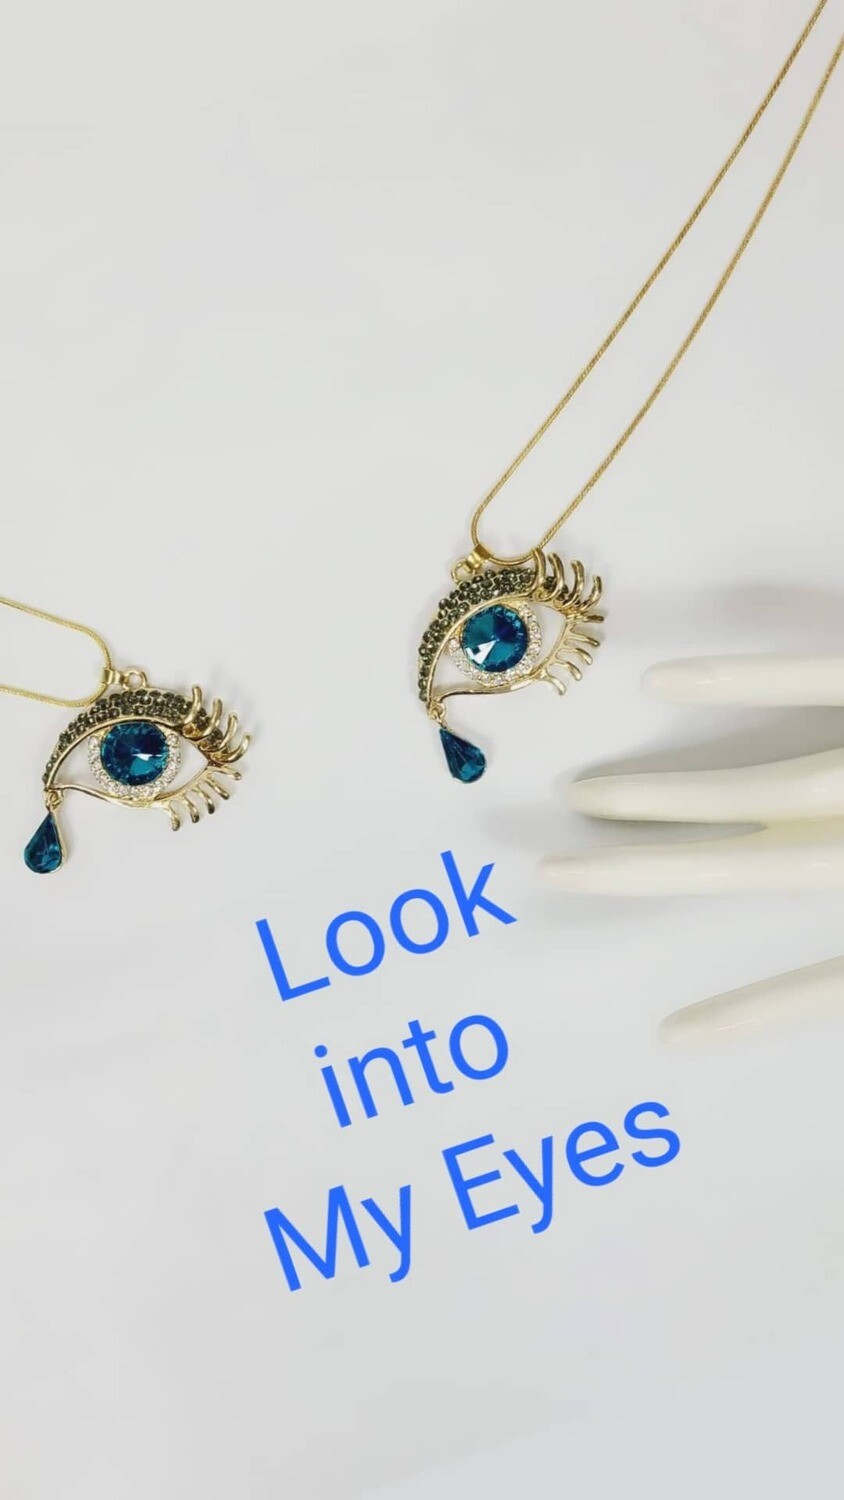 Eye / Teardrop Rhinestone and Gold Tone Necklace